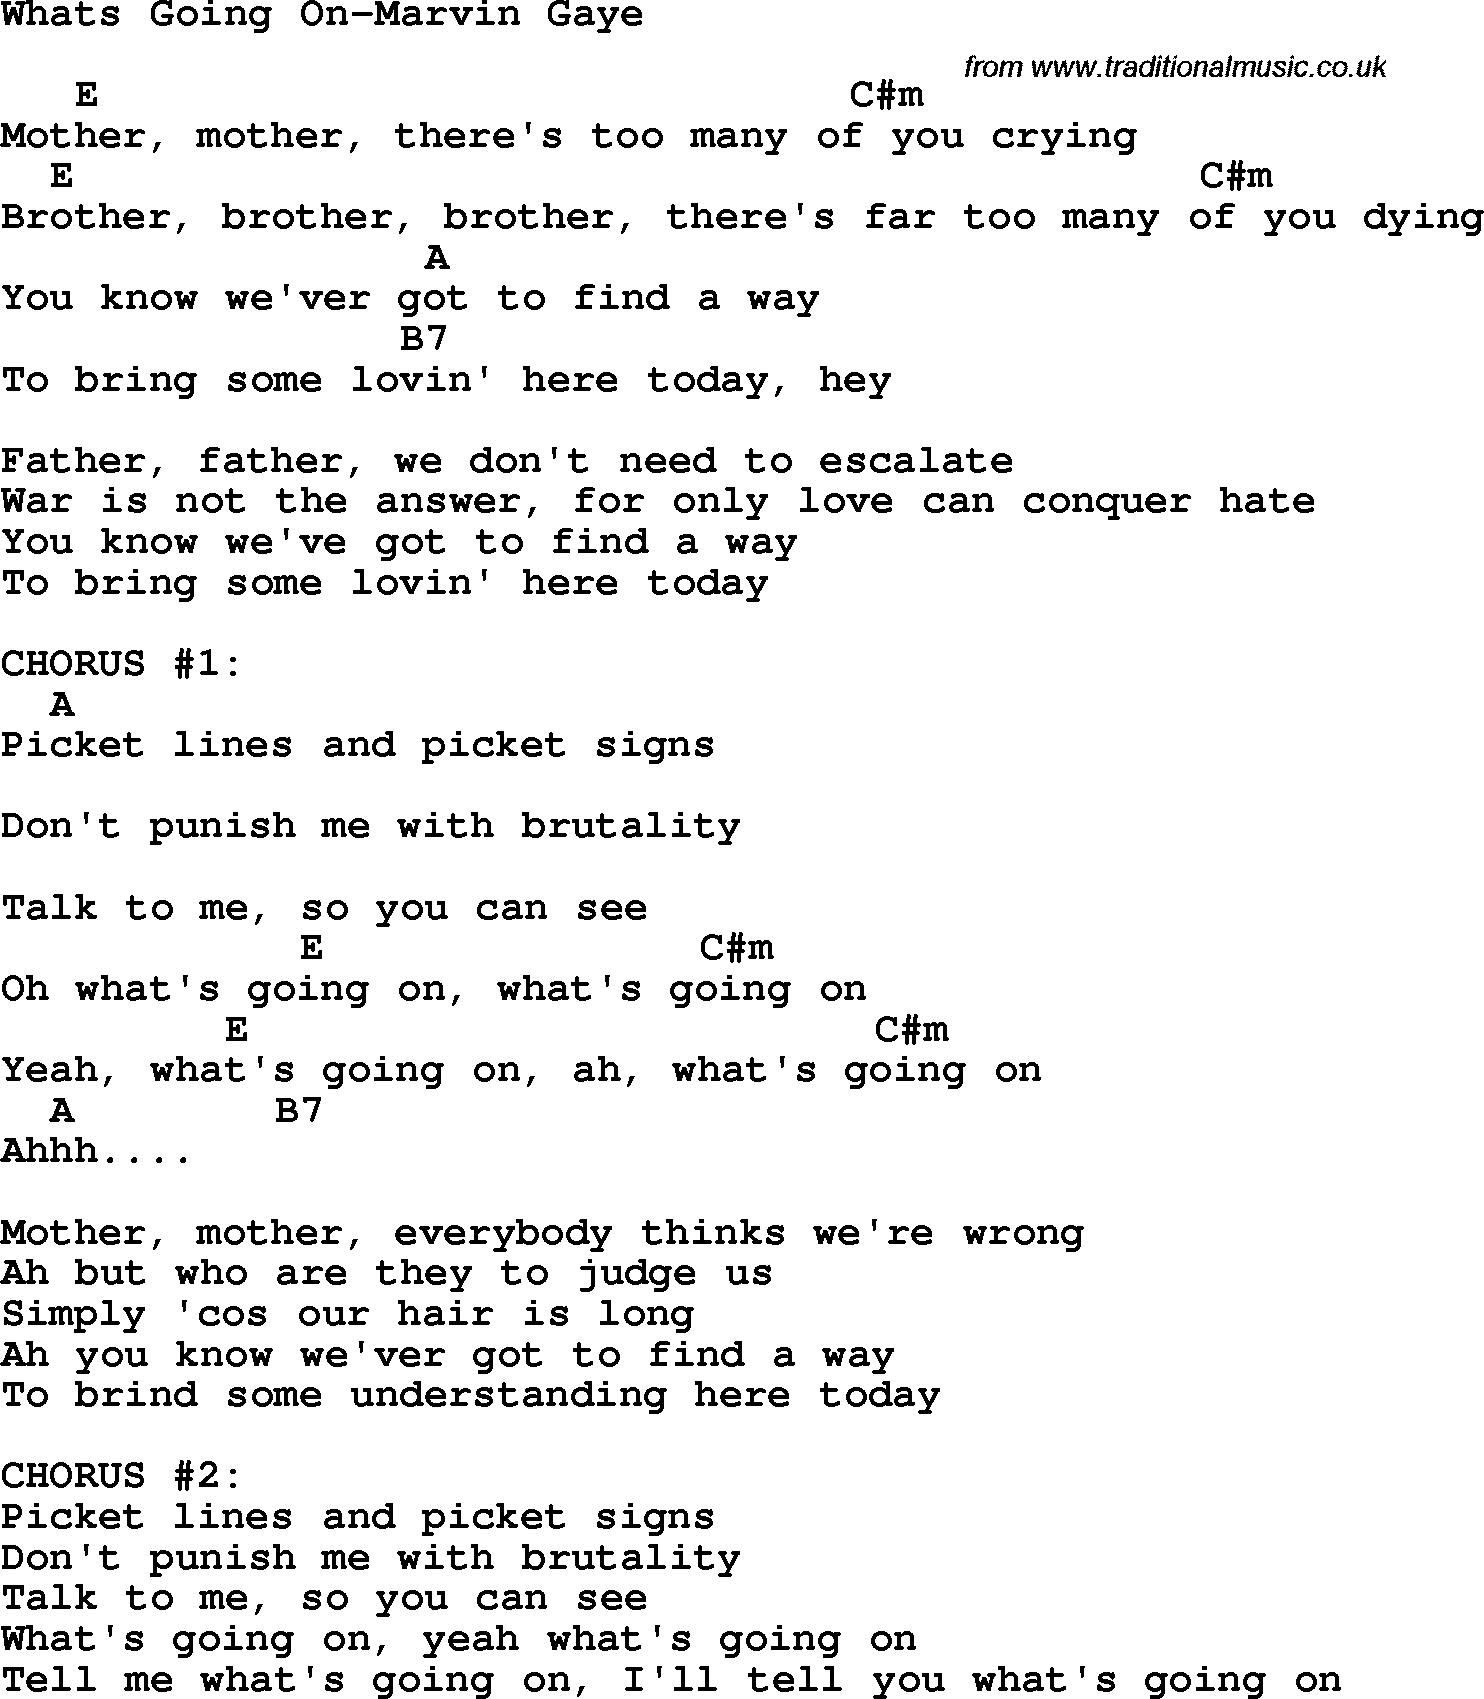 Marvin Gaye - Whats Going On Lyrics MetroLyrics